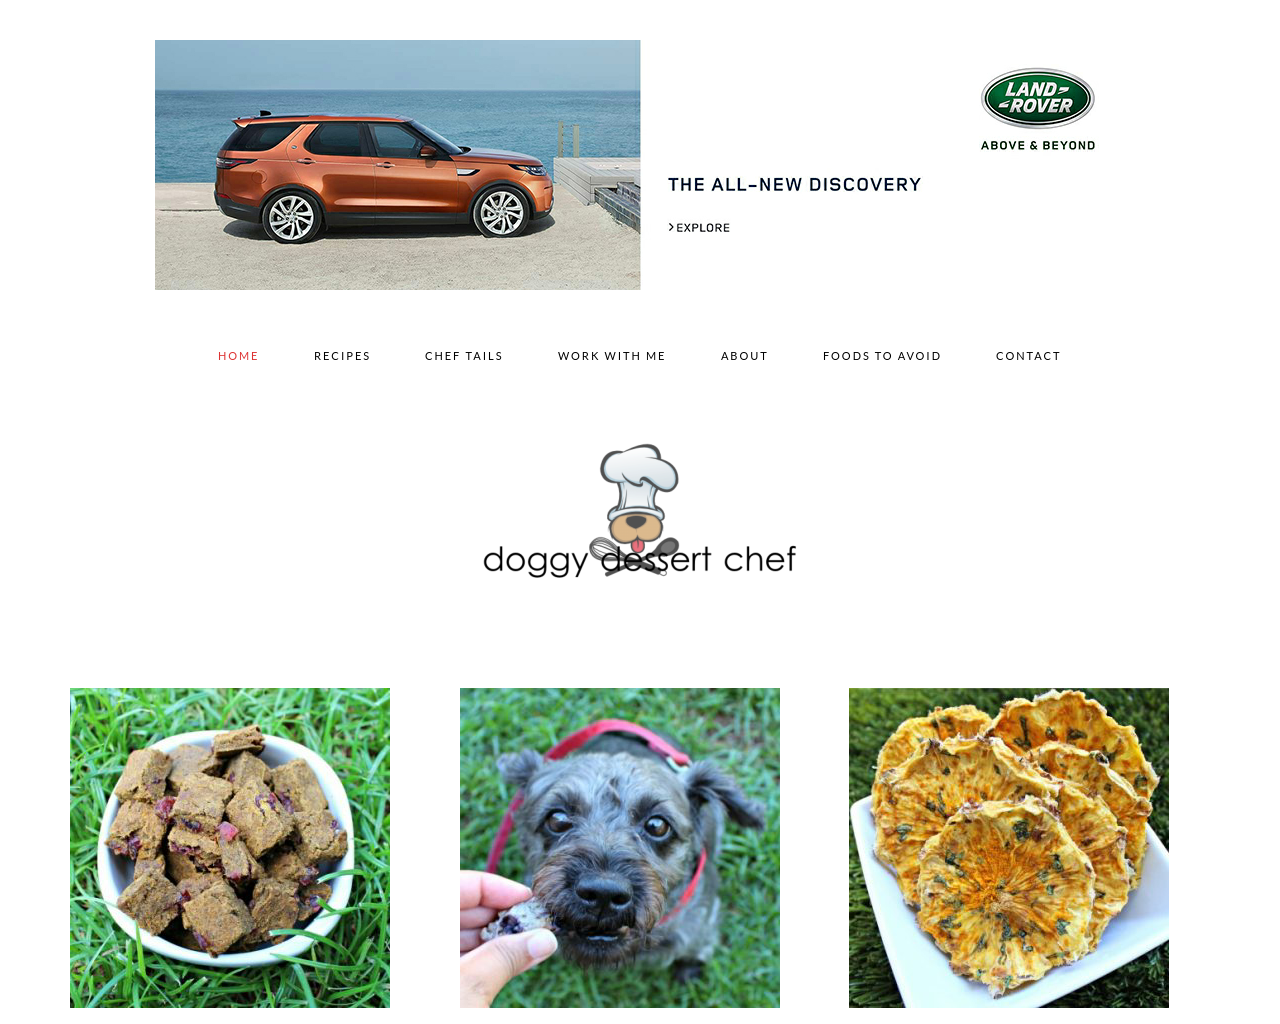 Doggy-Dessert-Chef-Advertising-Reviews-Pricing